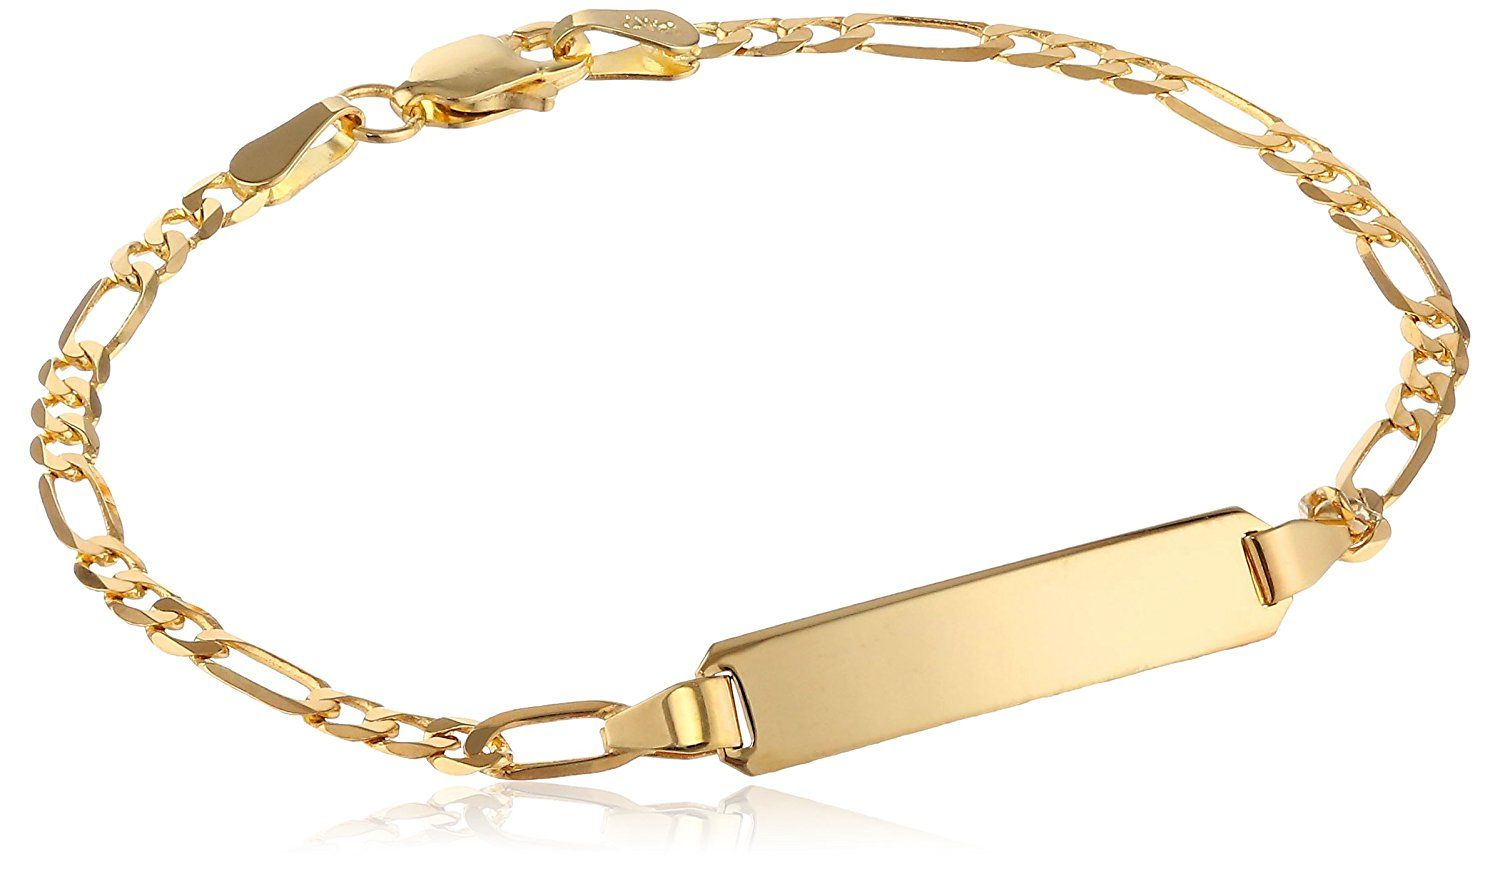 k Yellow Gold Figaro Baby ID Bracelet u Read more reviews of